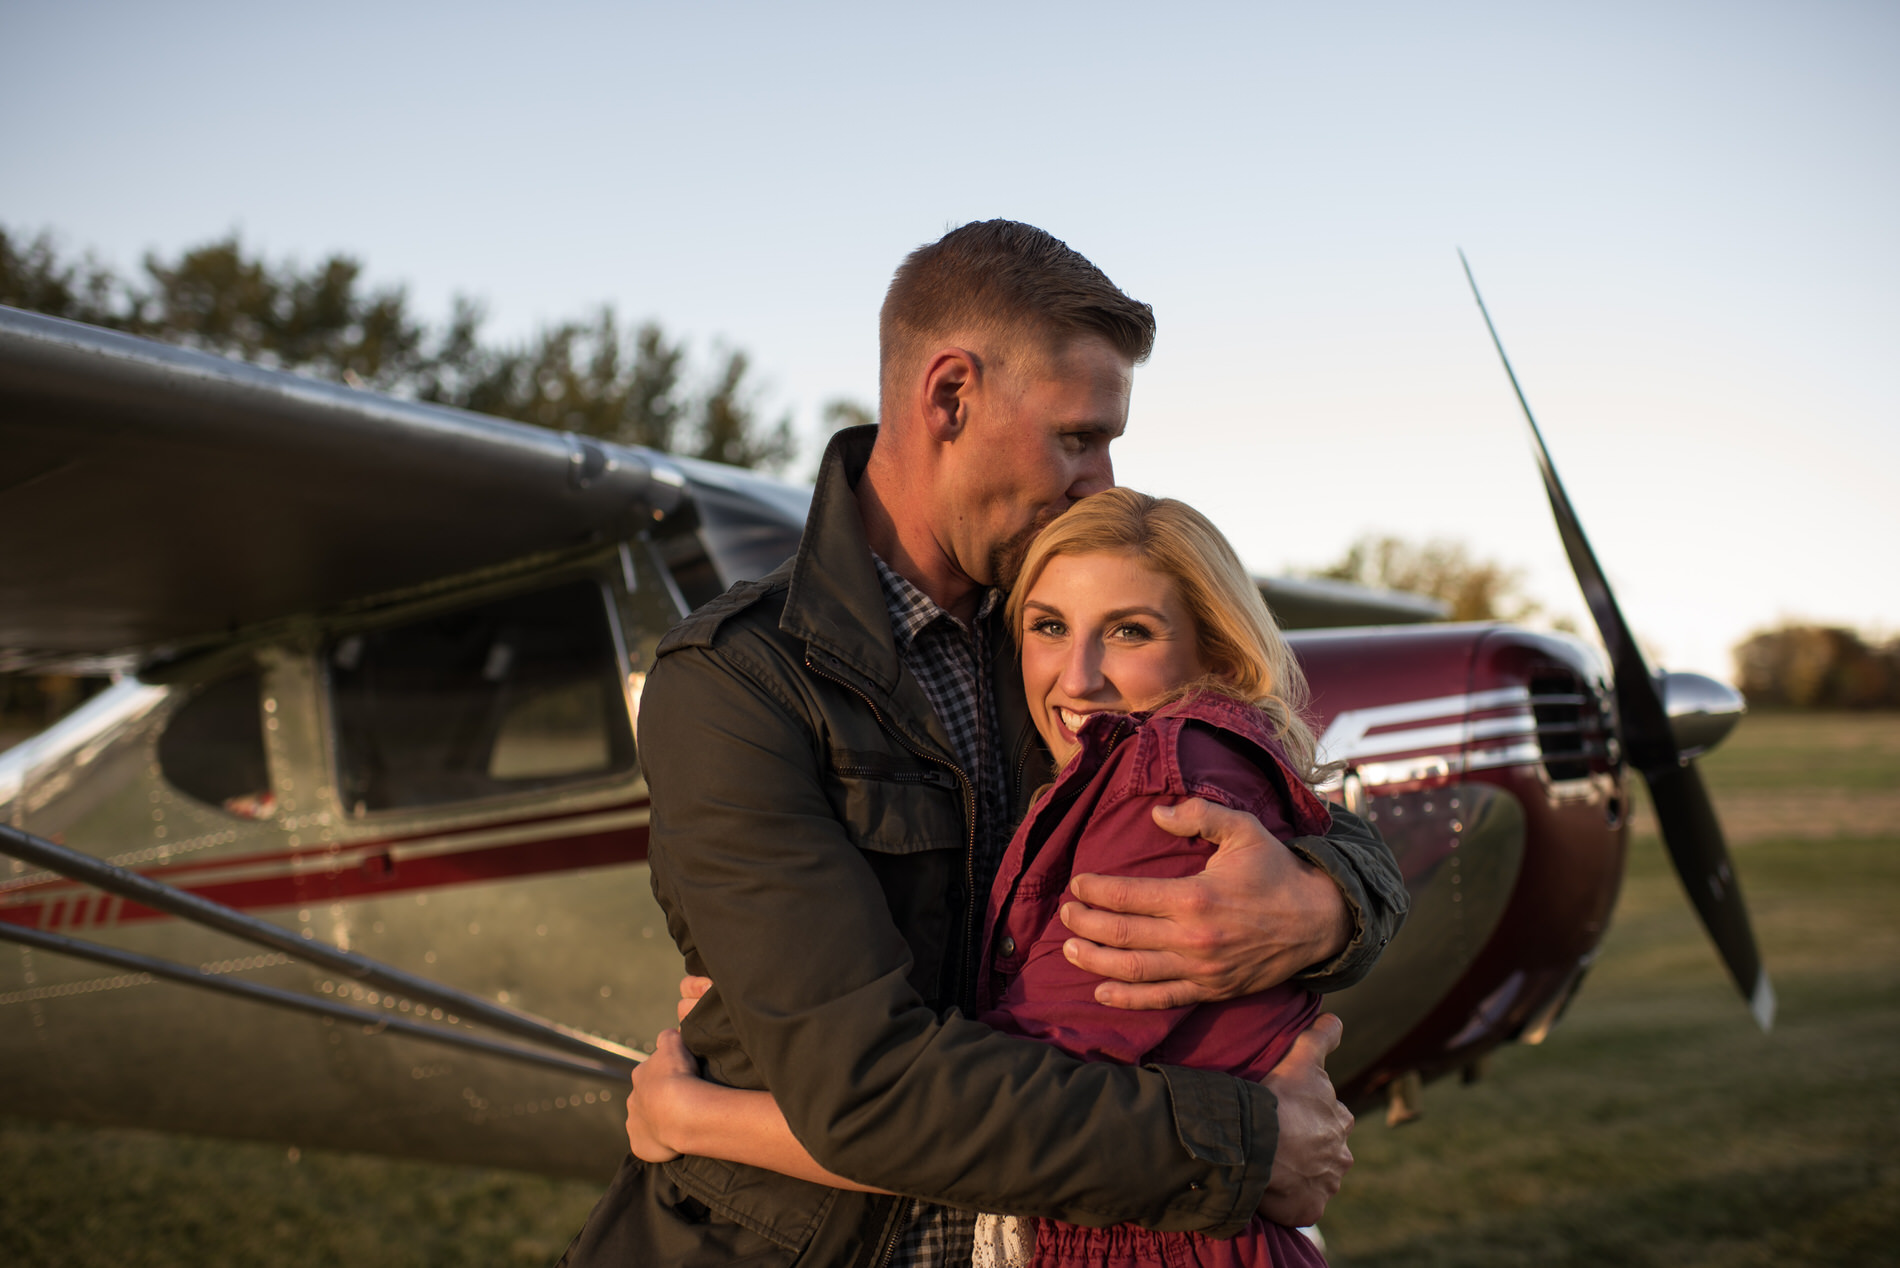 Edmonton_plane_airport_rolls_royve_engagement_photo_karen_ben_09.jpg